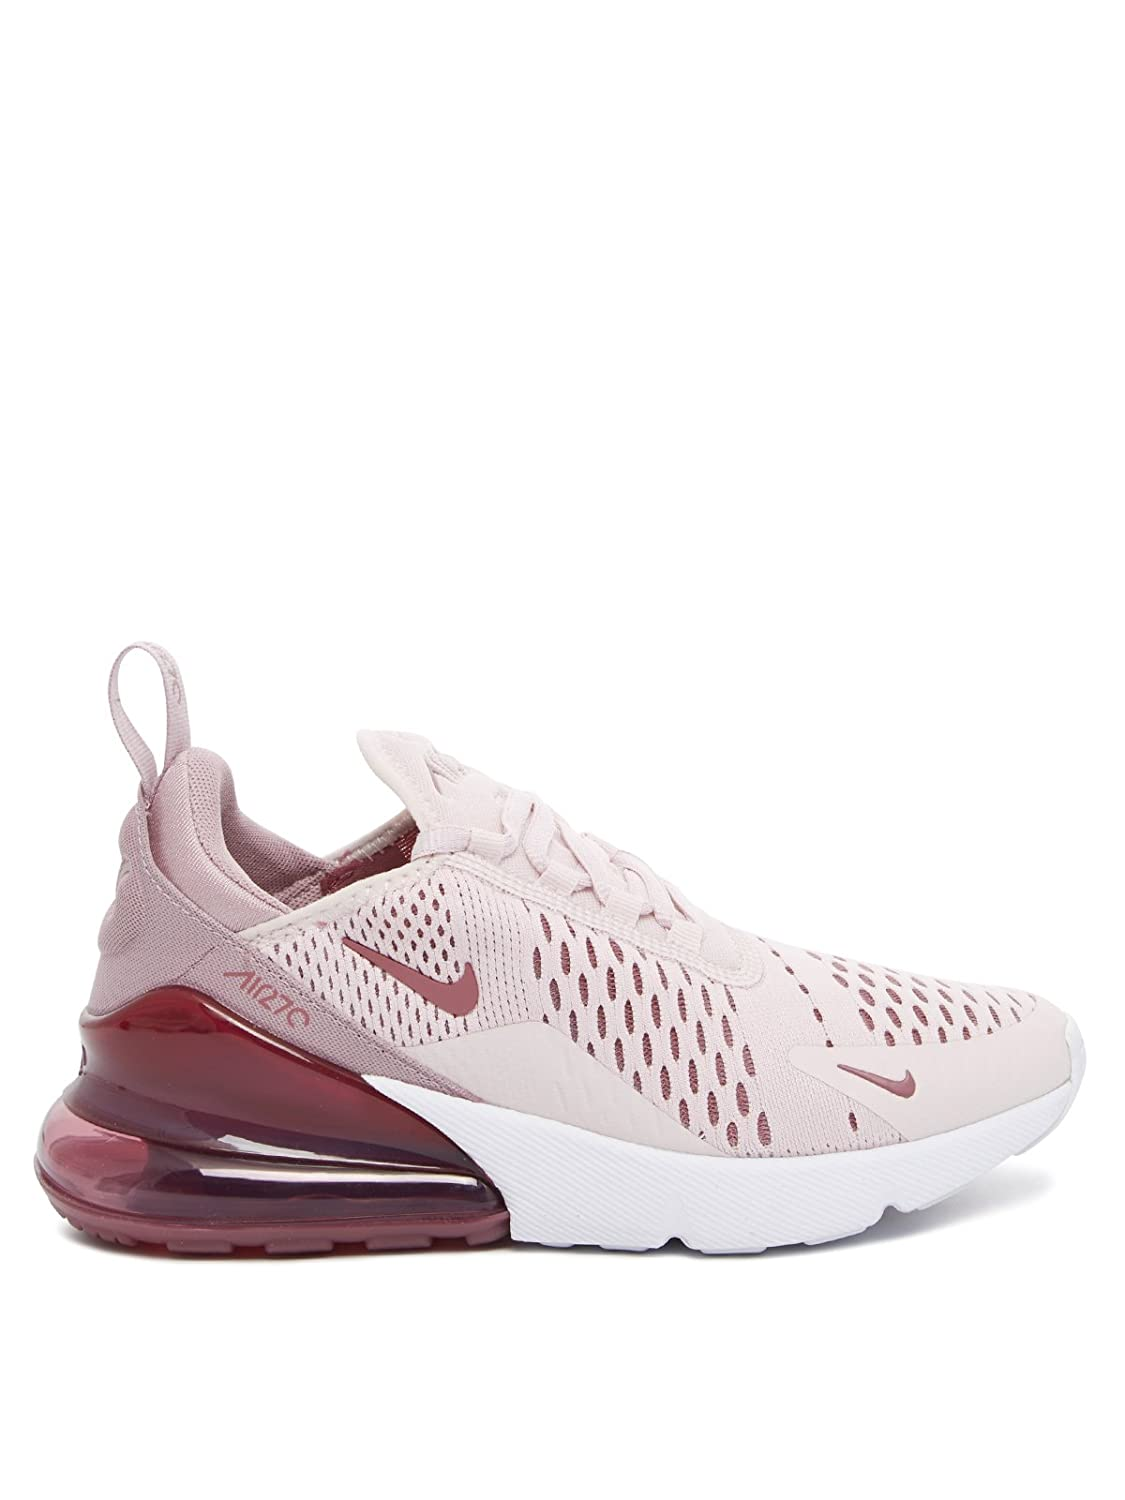 official images best service pretty nice NIKE W AIR Max 270 / Rose